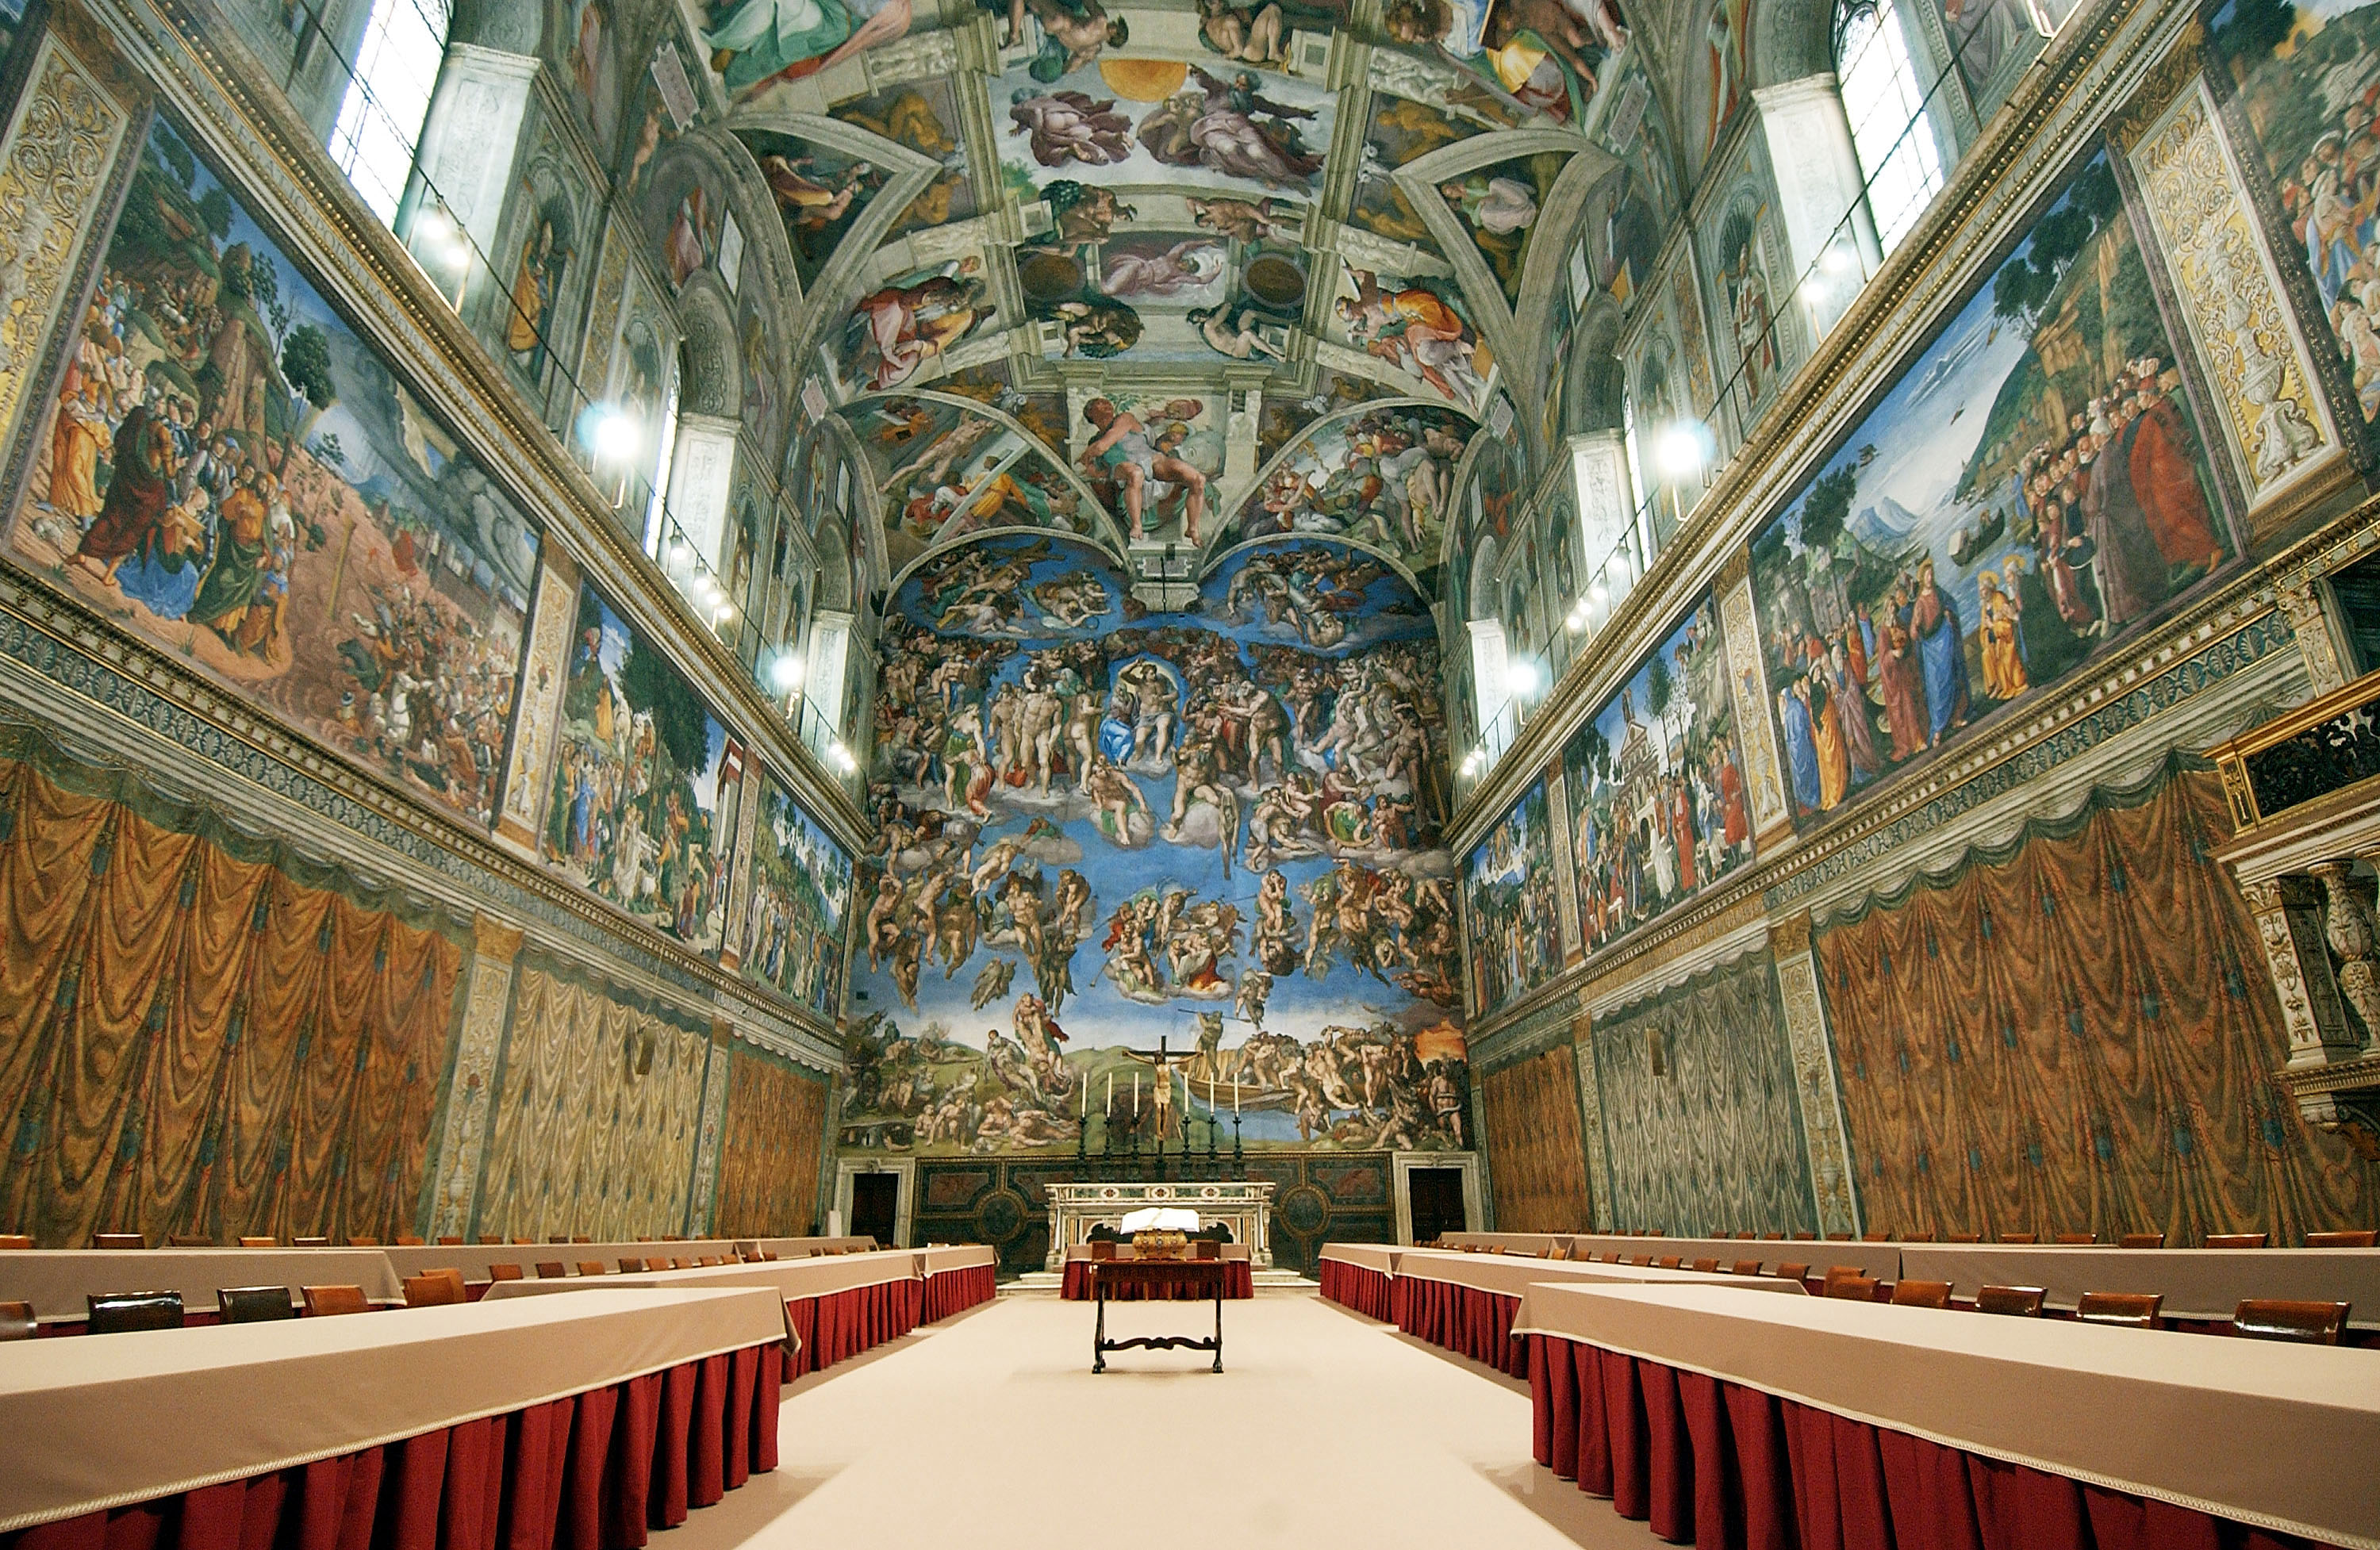 The day after taking in an Andy Warhol exhibition, it was on to Michaelangelo's Sistine Chapel...